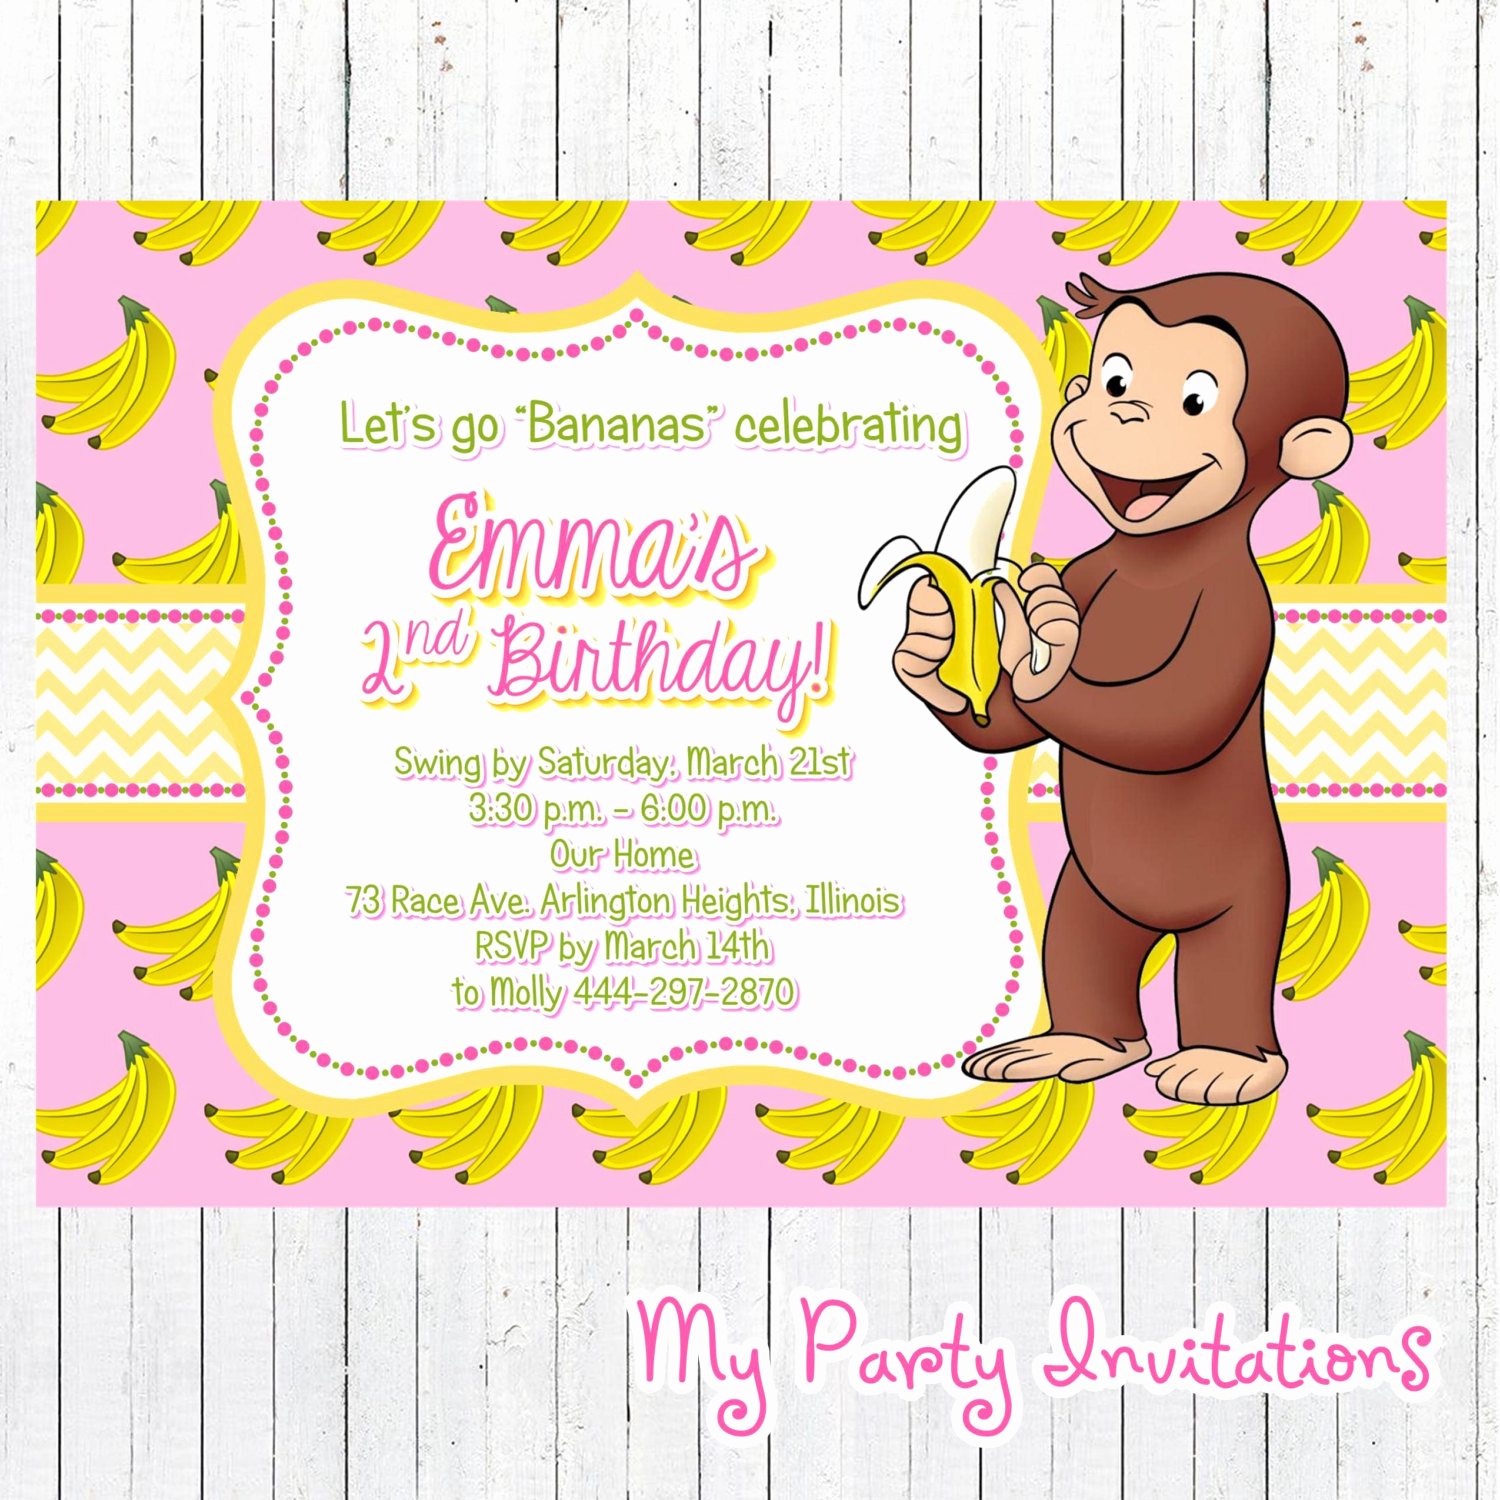 Curious George Invitation Template Best Of Curious George Birthday Invitation Banana by